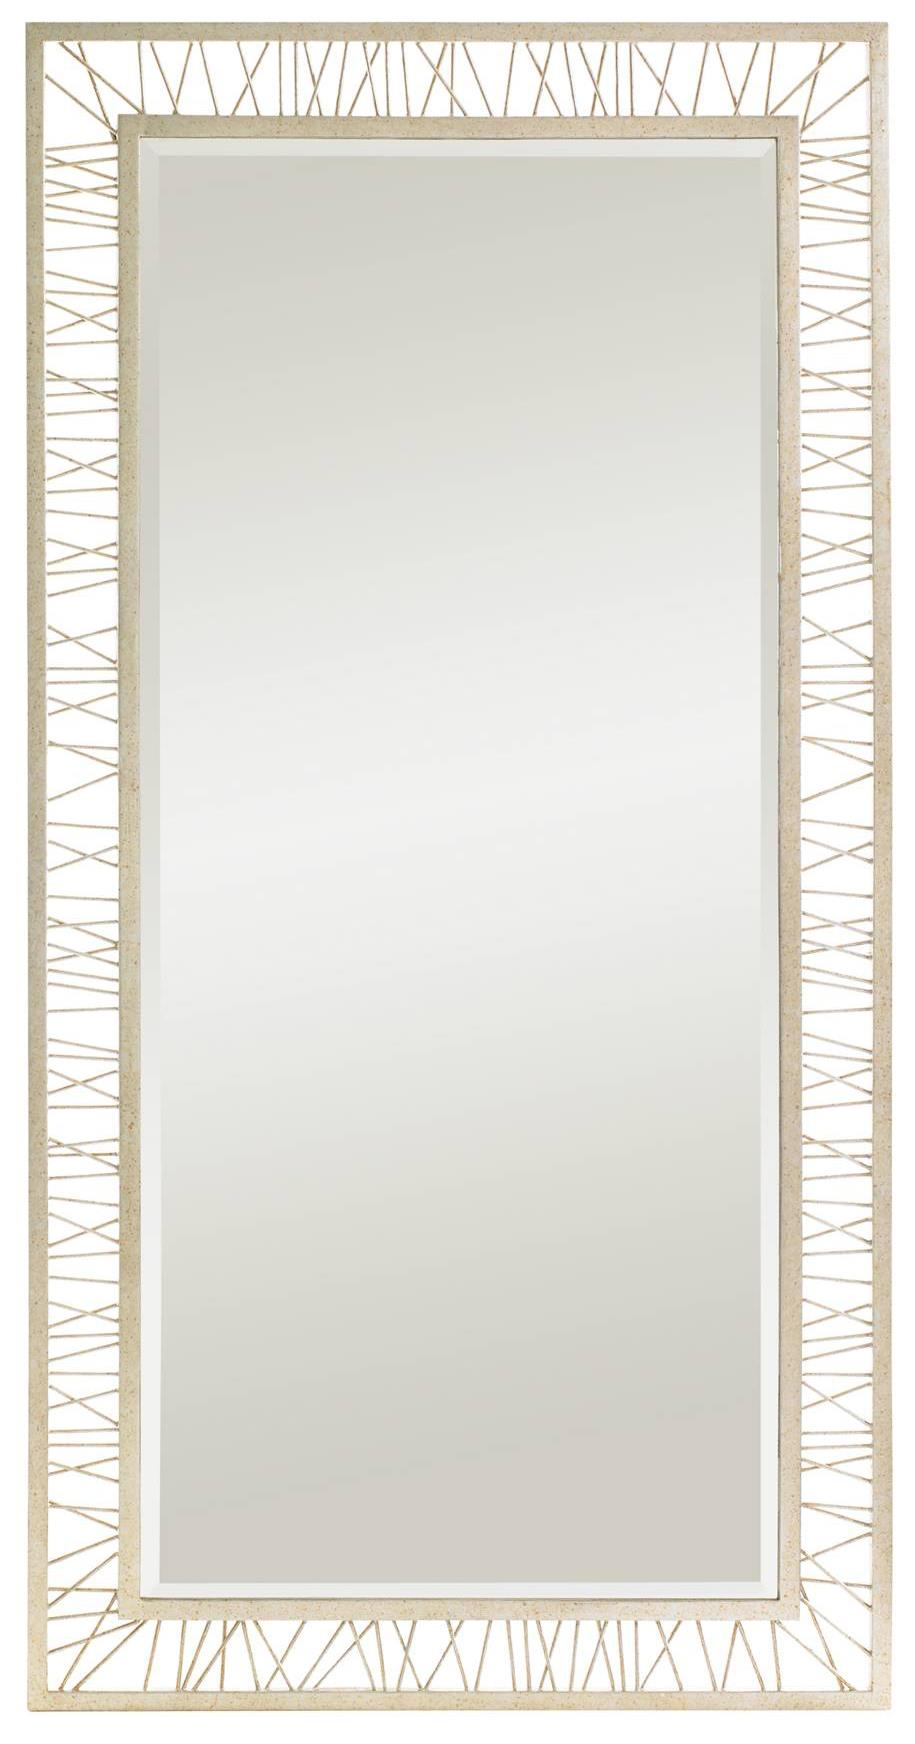 Stanley Furniture Crestaire Palm Canyon Floor Mirror - Item Number: 436-43-34